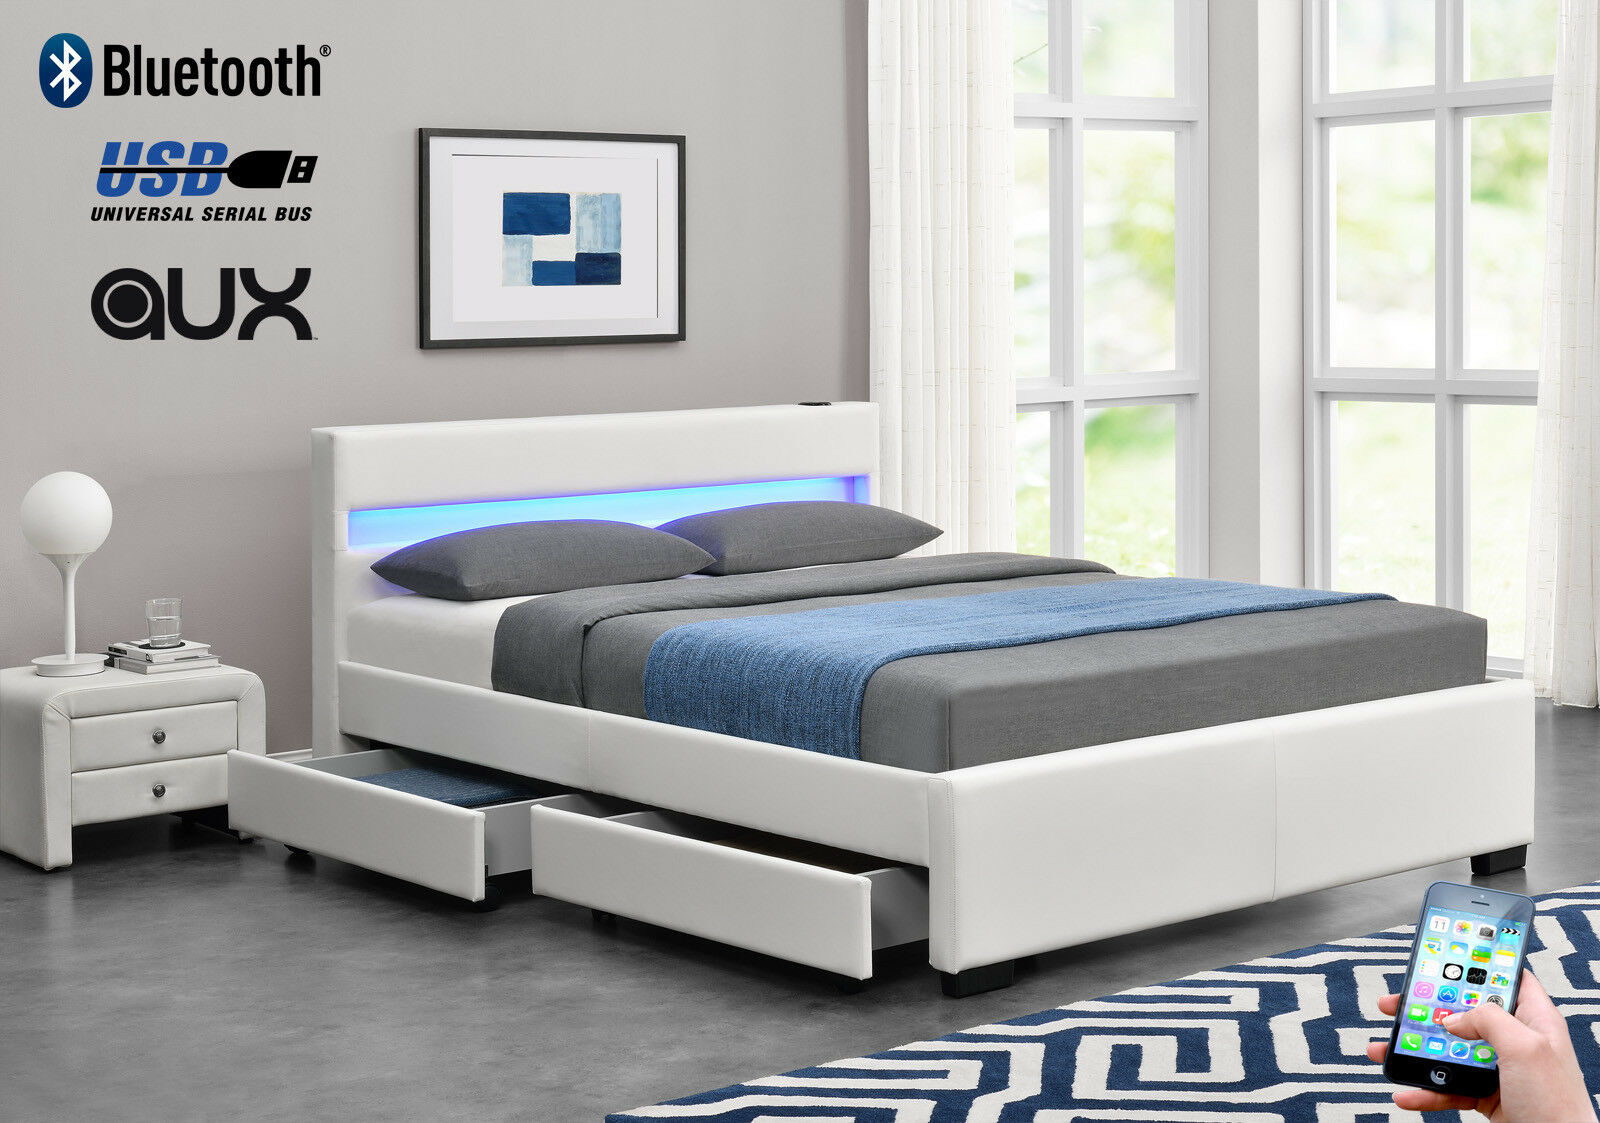 Exclusive harmin bluetooth white leather led music 4 for Exclusive beds